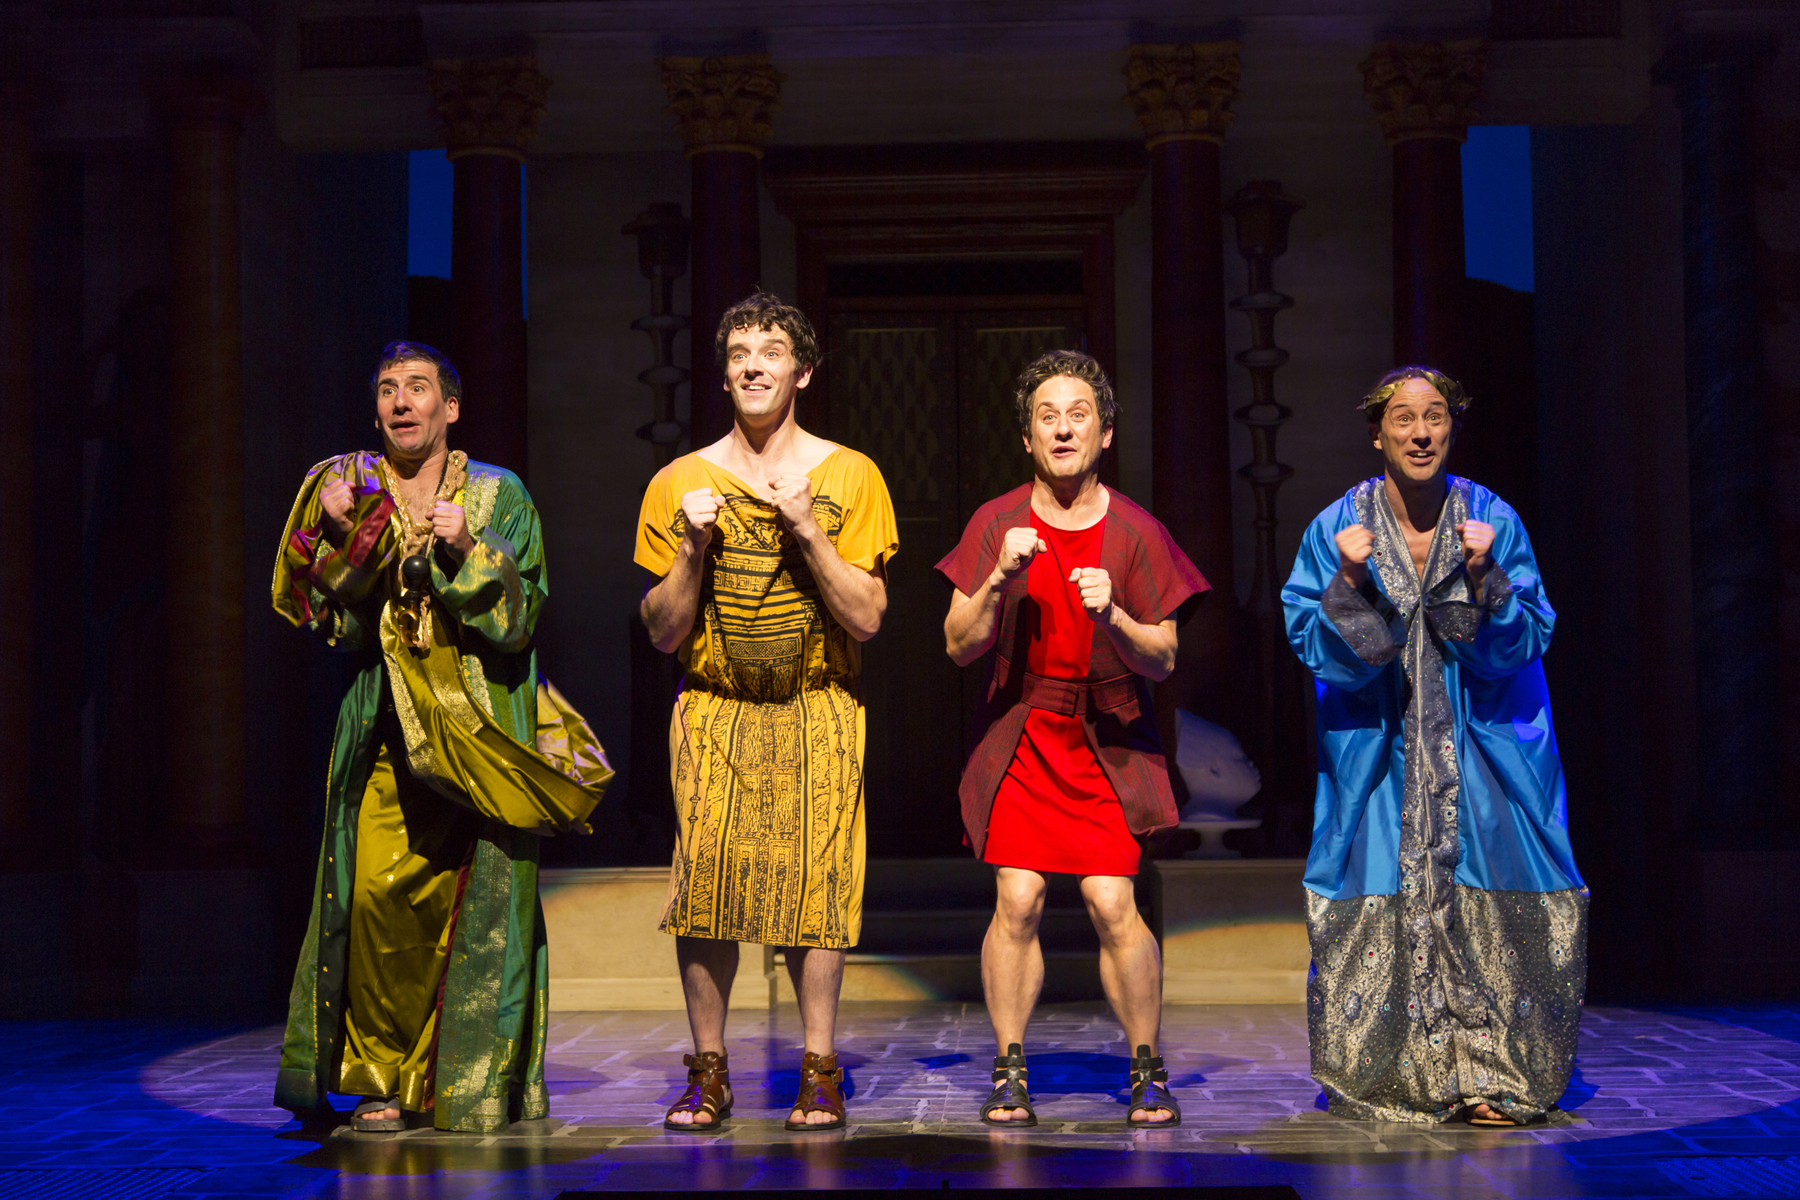 David Josefsberg (Marcus Lycus), Michael Urie (Hysterium), Christopher Fitzgerald (Pseudolus), and Kevin Isola (Senex) in A Funny Thing Happened on the Way to the Forum at Two River Theater. Photo by T. Charles Erickson.